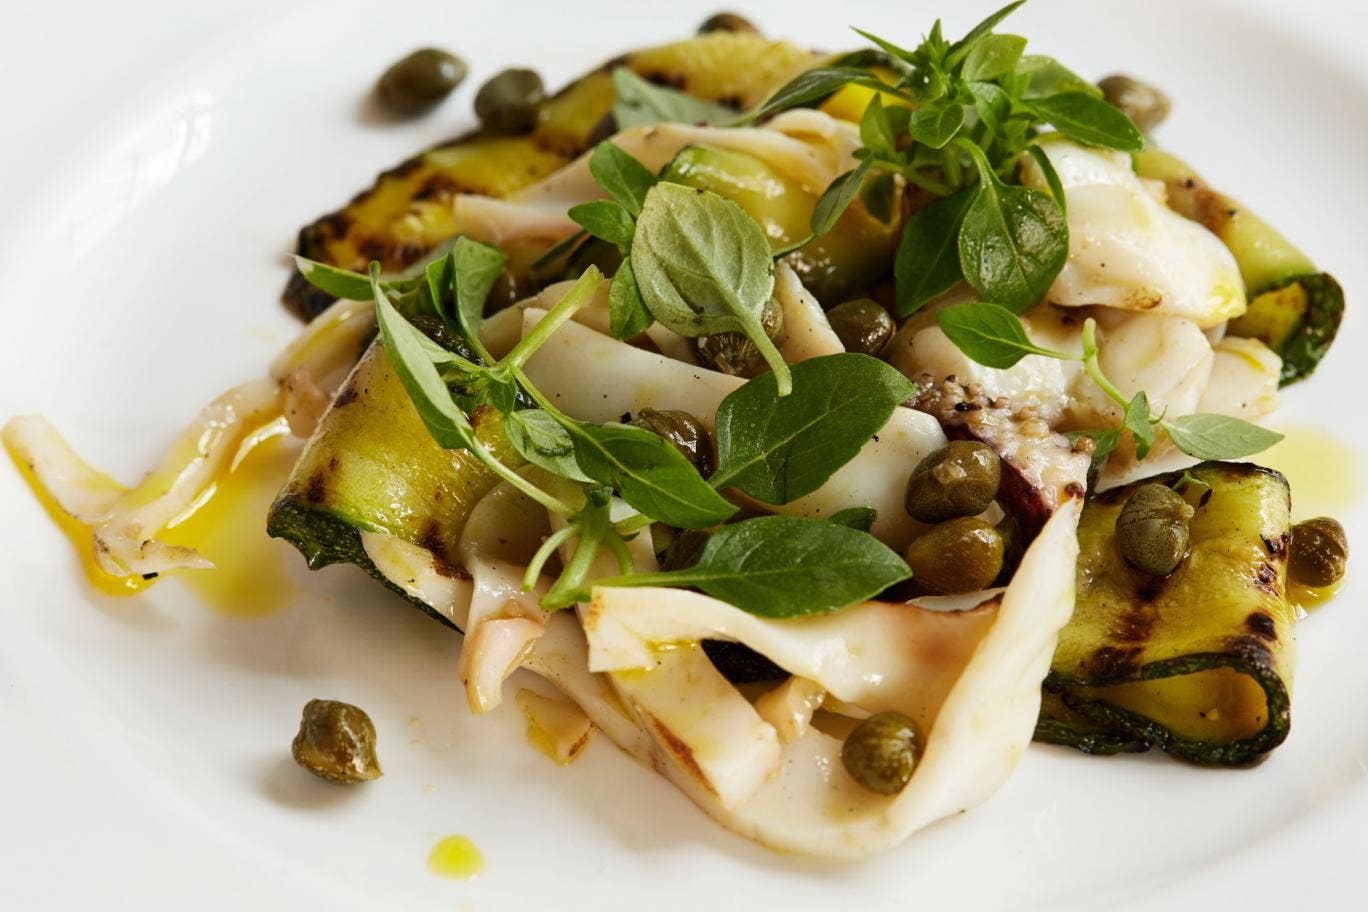 Grilled courgettes with cuttlefish and capers